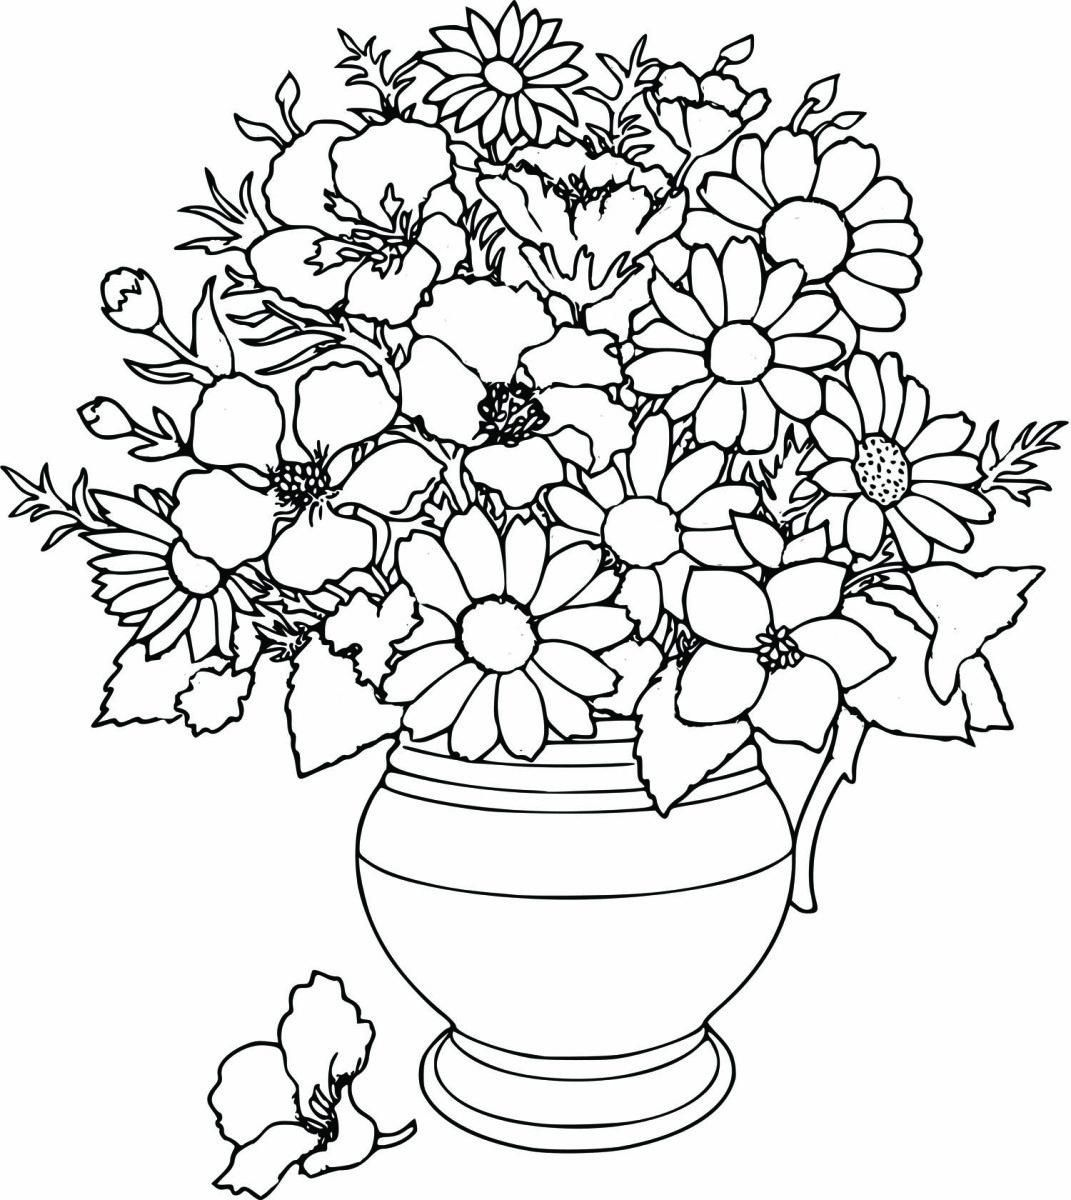 10 Coloring Page Flower Bouquet Printable Flower Coloring Pages Flower Coloring Pages Spring Coloring Pages